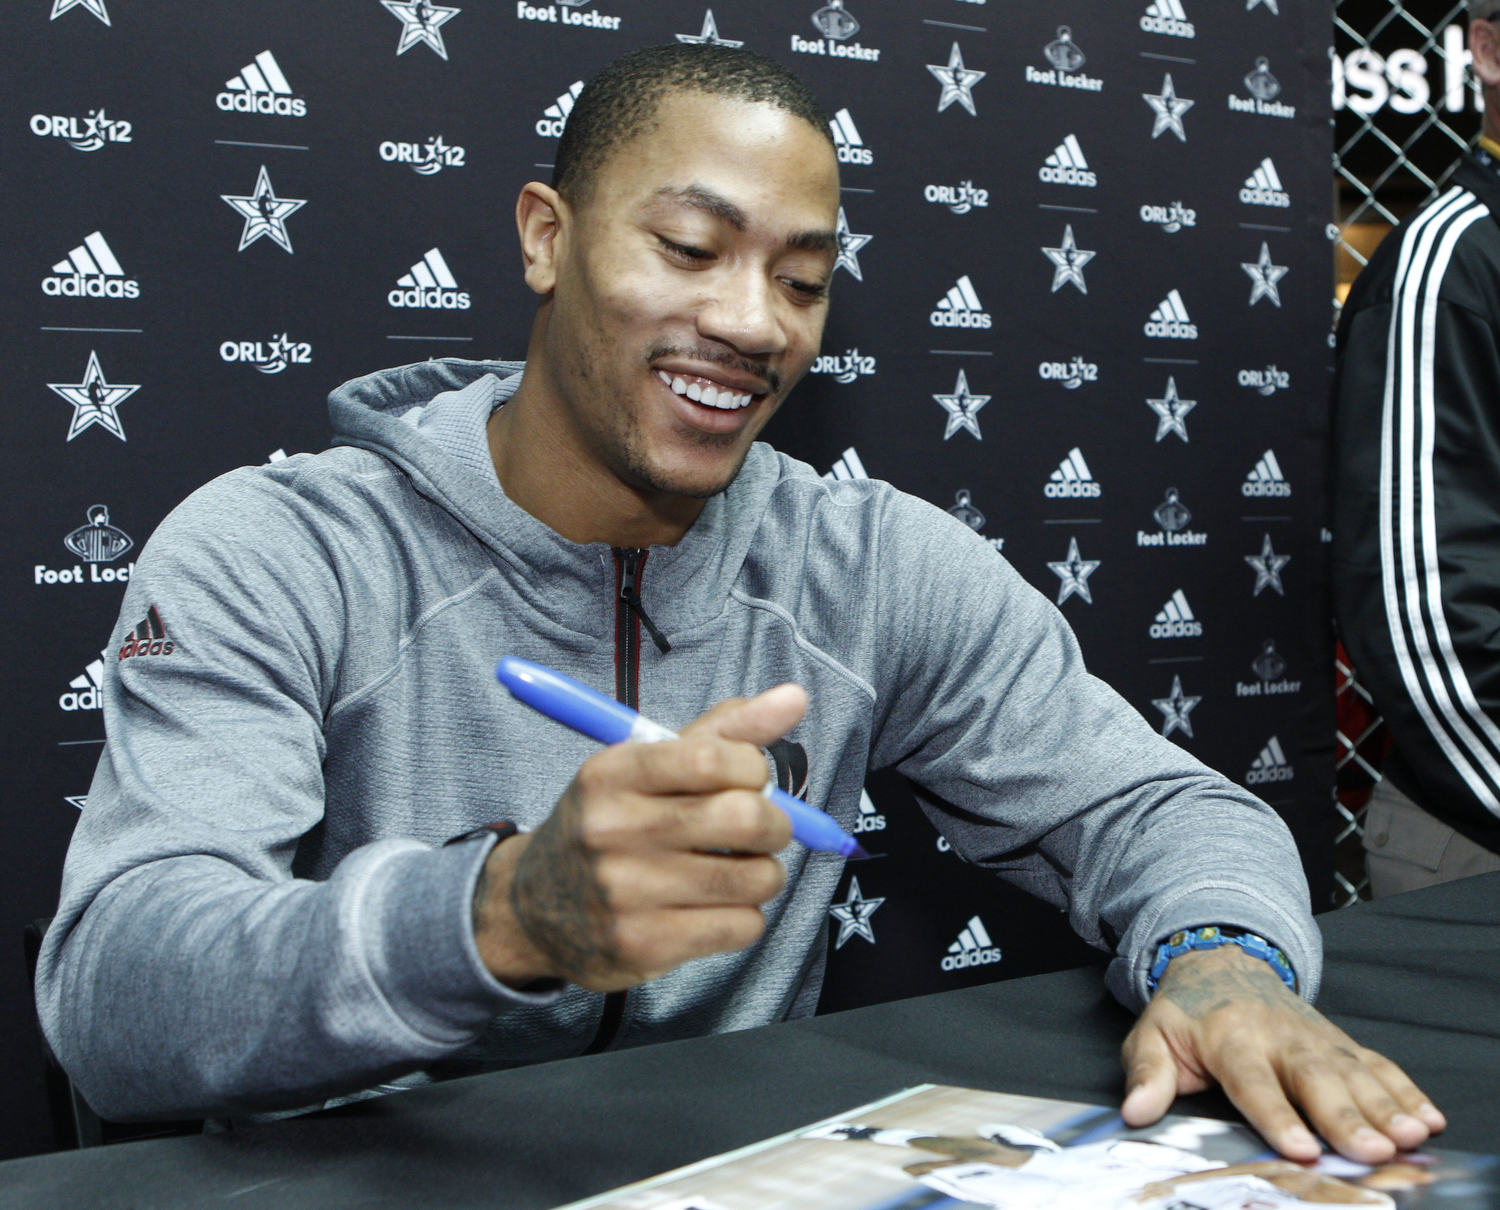 Derrick Rose and adidas at NBA All-Star  3f338acdeea9